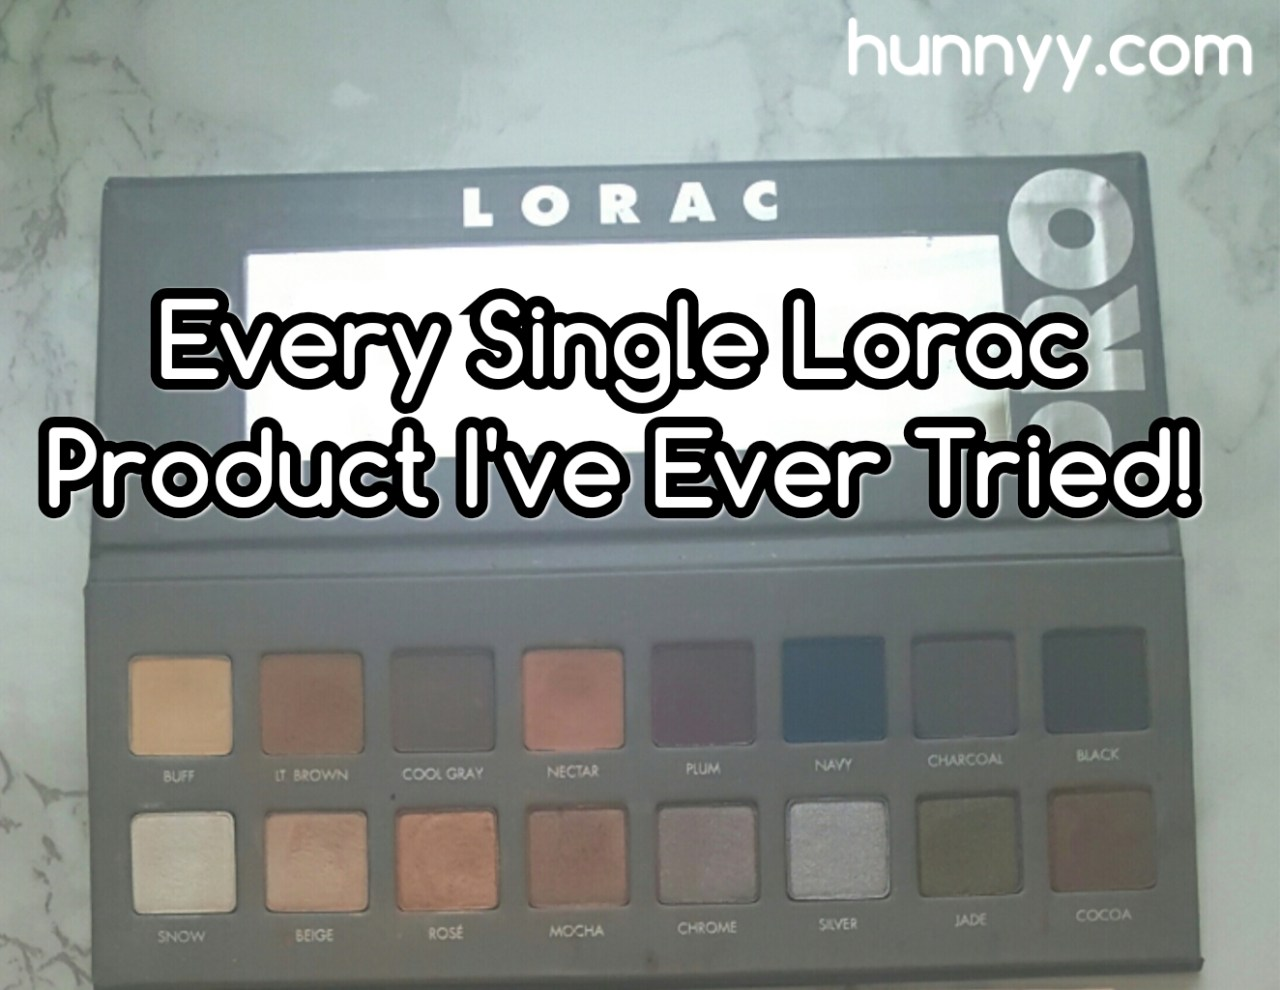 Every Single Lorac Product I've Ever Tried!